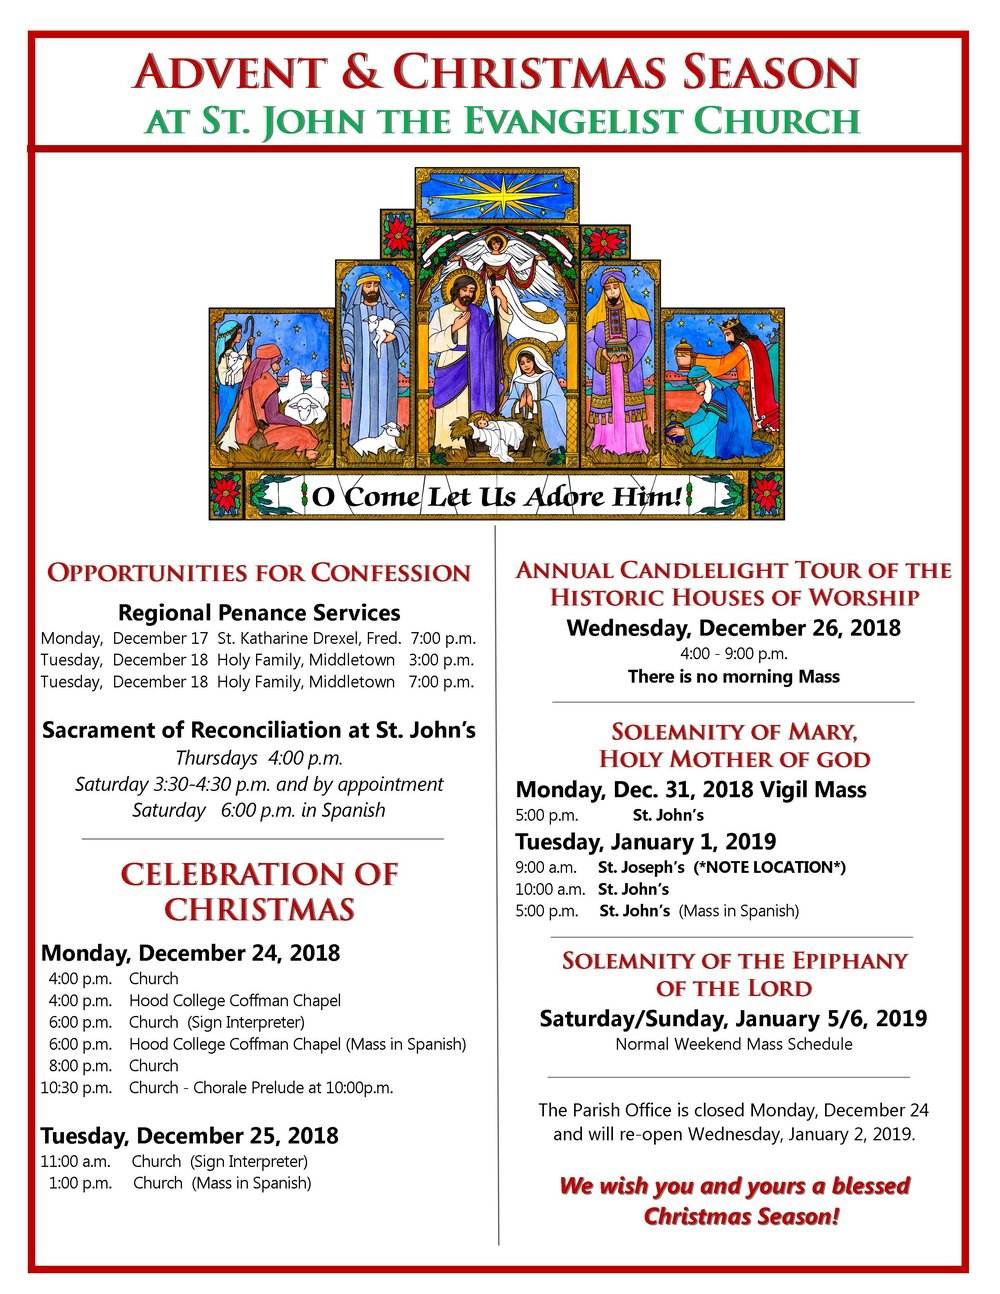 Advent & Christmas Season bulletin  insert - final.jpg